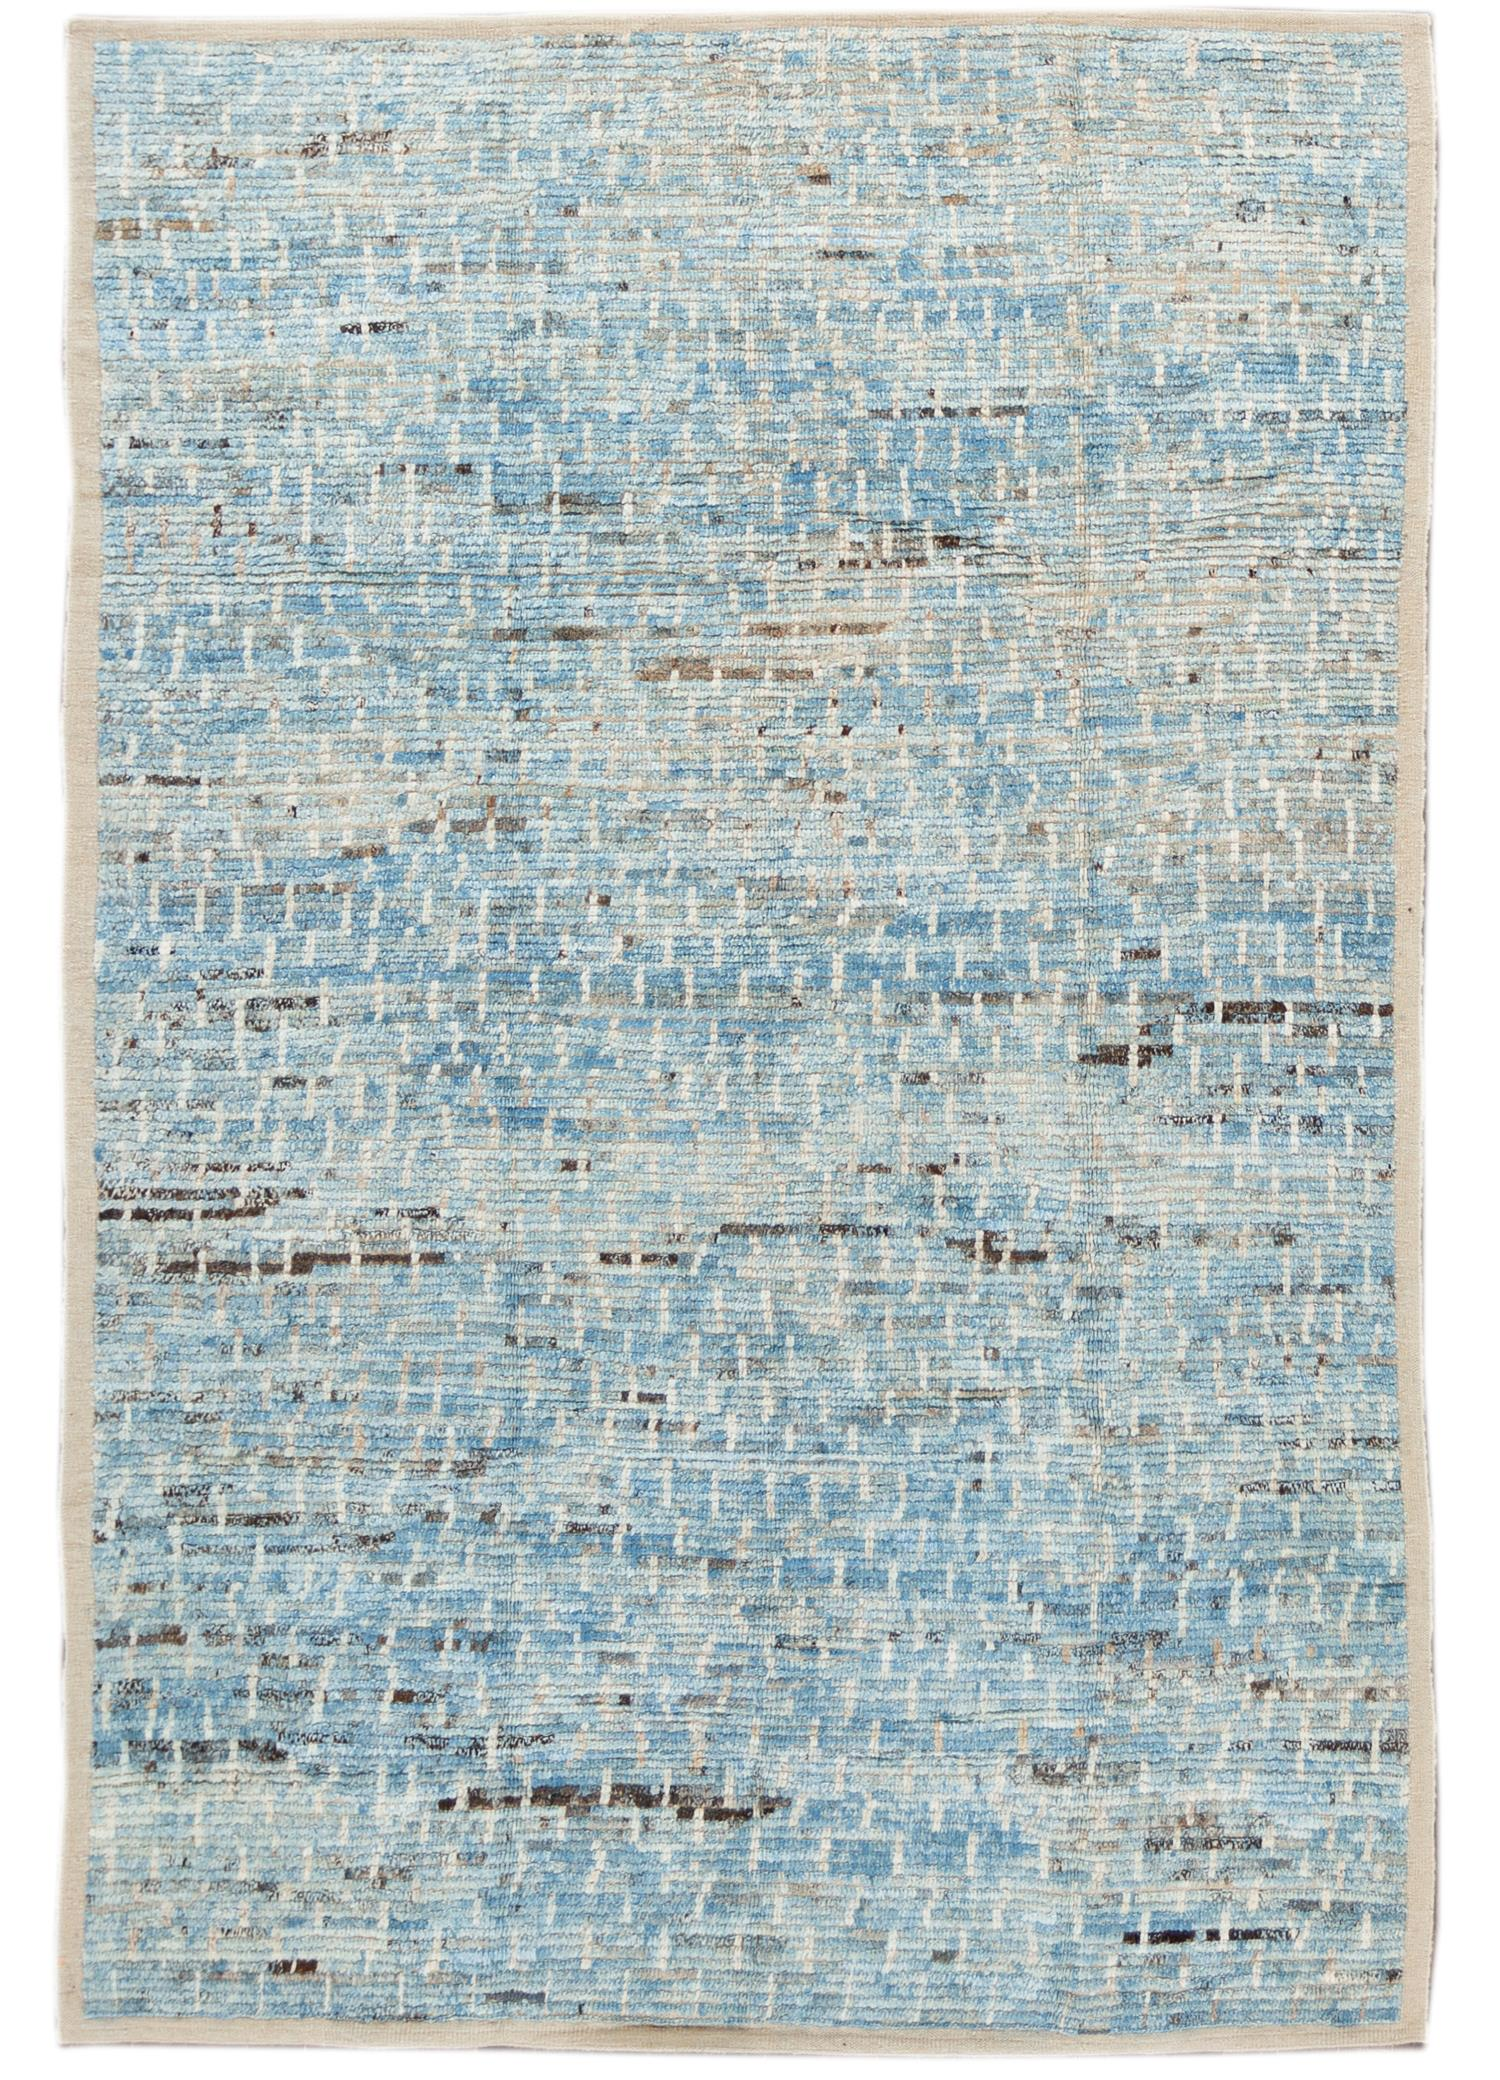 21st Century Modern Moroccan-style Rug, 6' x 9'